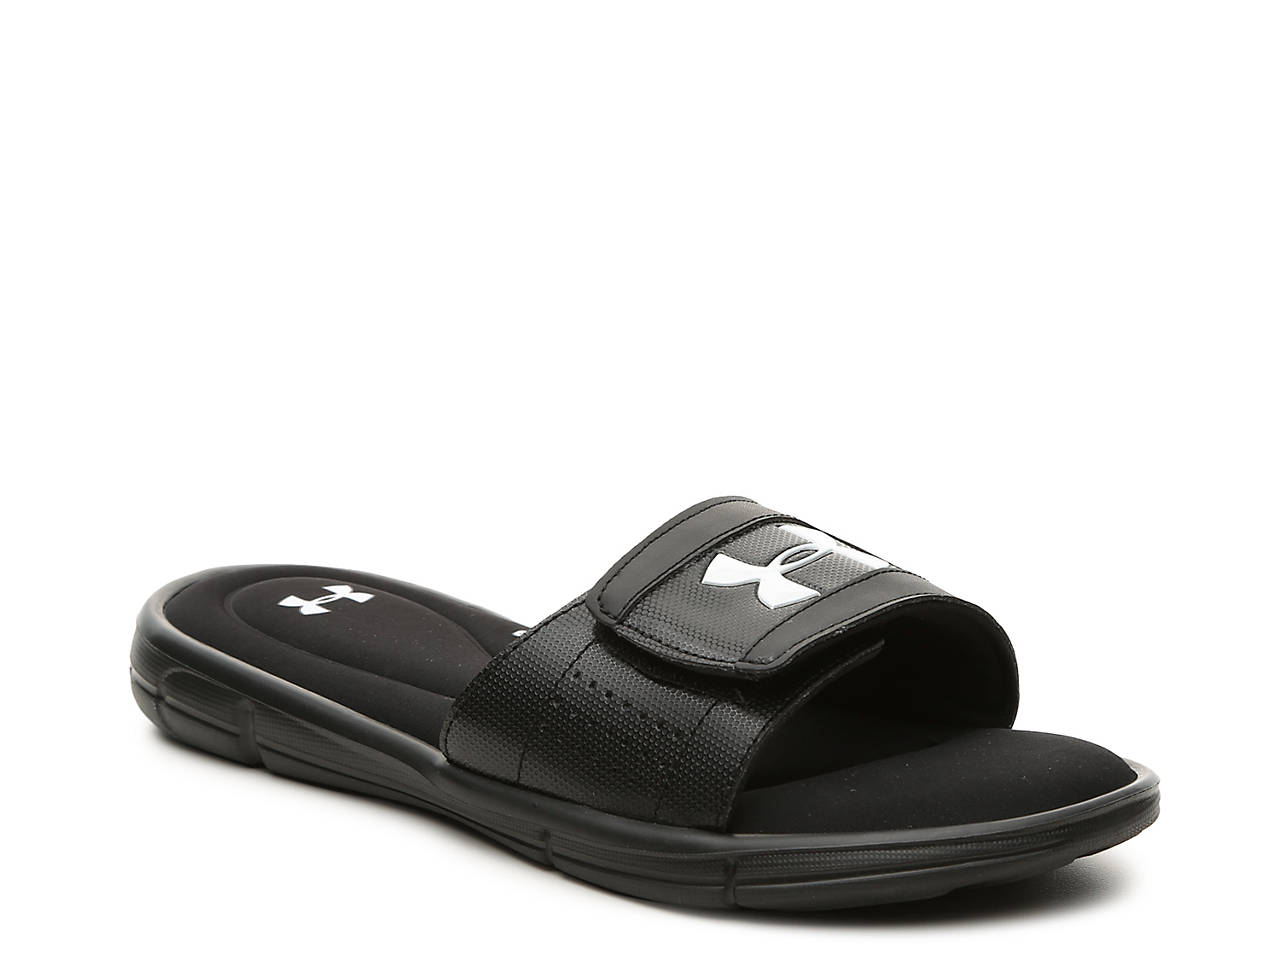 215ad39a Ignite V Slide Sandal - Men's